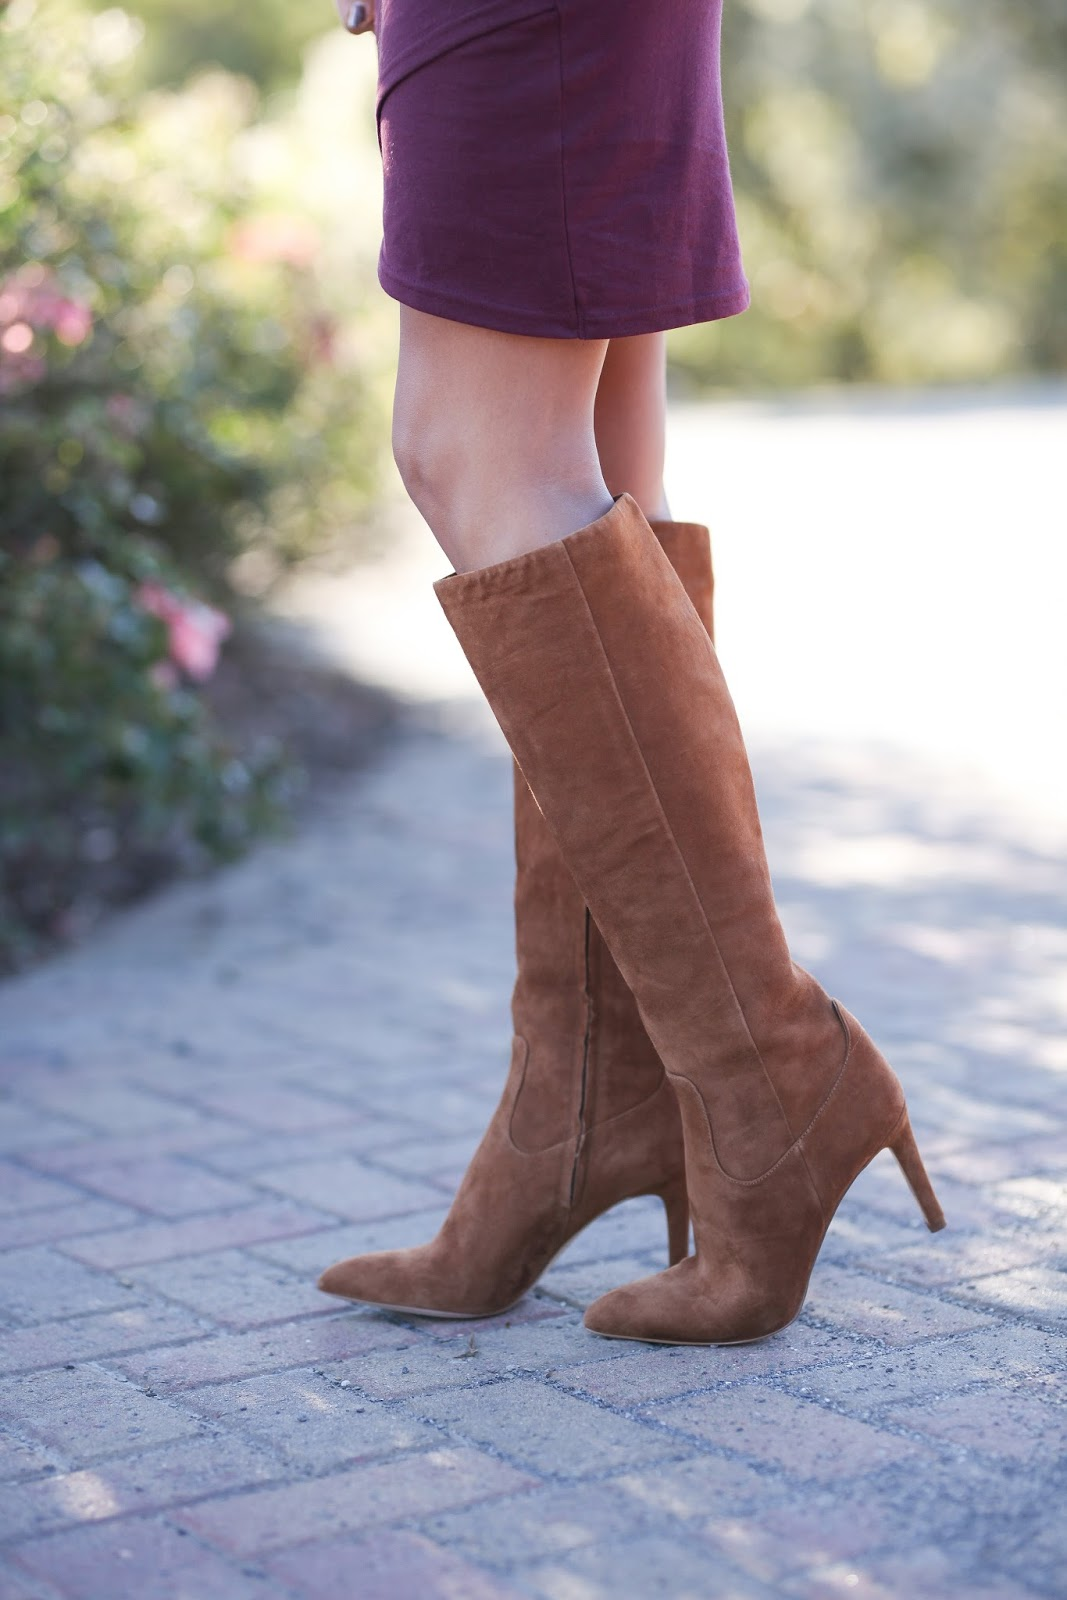 326c6186b30 Sam Edelman Knee High Boots. All Photos by  Deeana Kourtney Photography